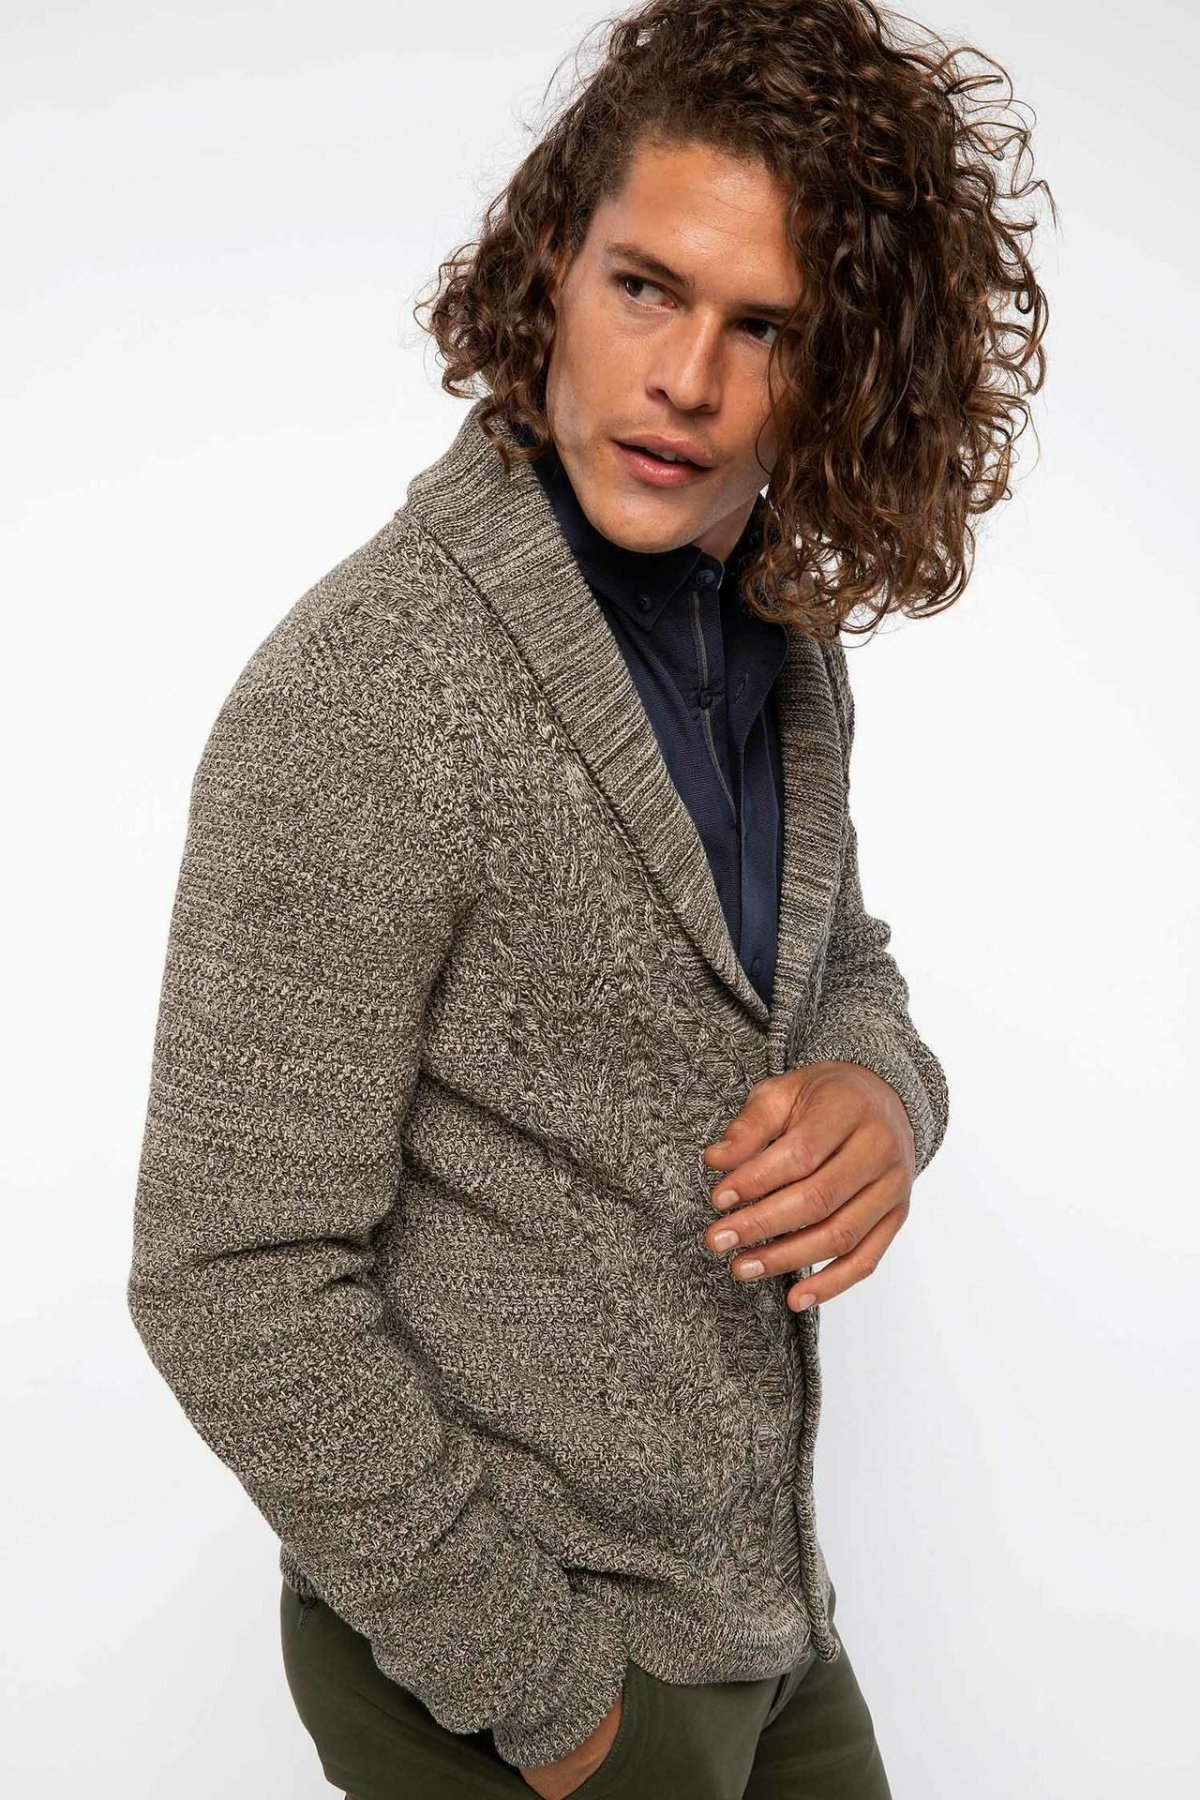 DeFacto Man Knitted Cardigan Men Autumn Winter Knit Sweaters Casual Long Sleeve Sweater Tops / Bolero-J0504AZ18WN